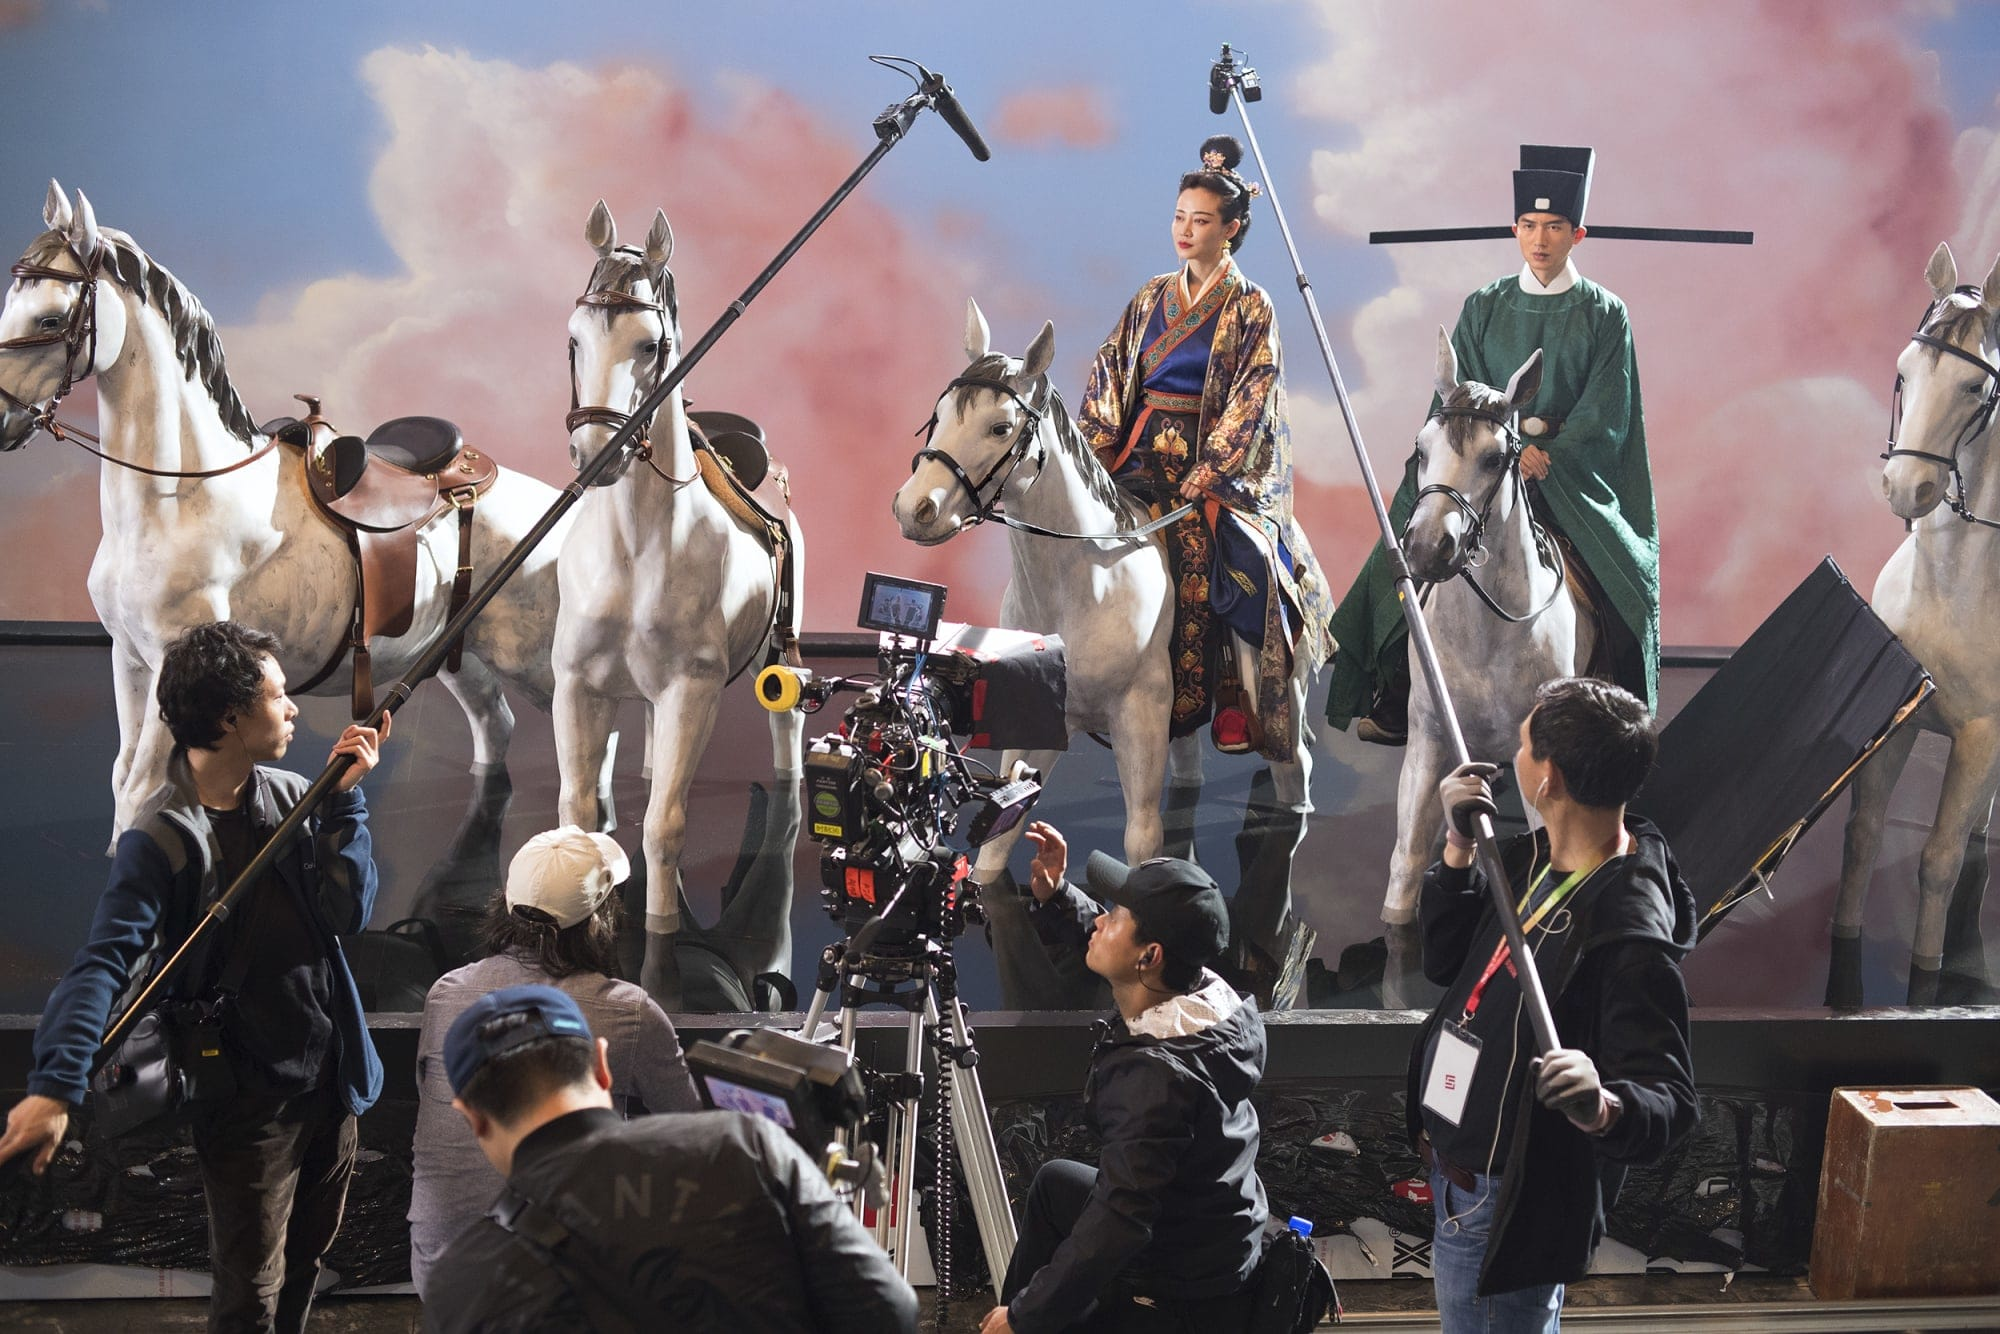 Photograph of five crew members with film equipment documenting a stage set of five horses, two traditionally dressed actors and a backdrop of pink clouds against a blue sky.